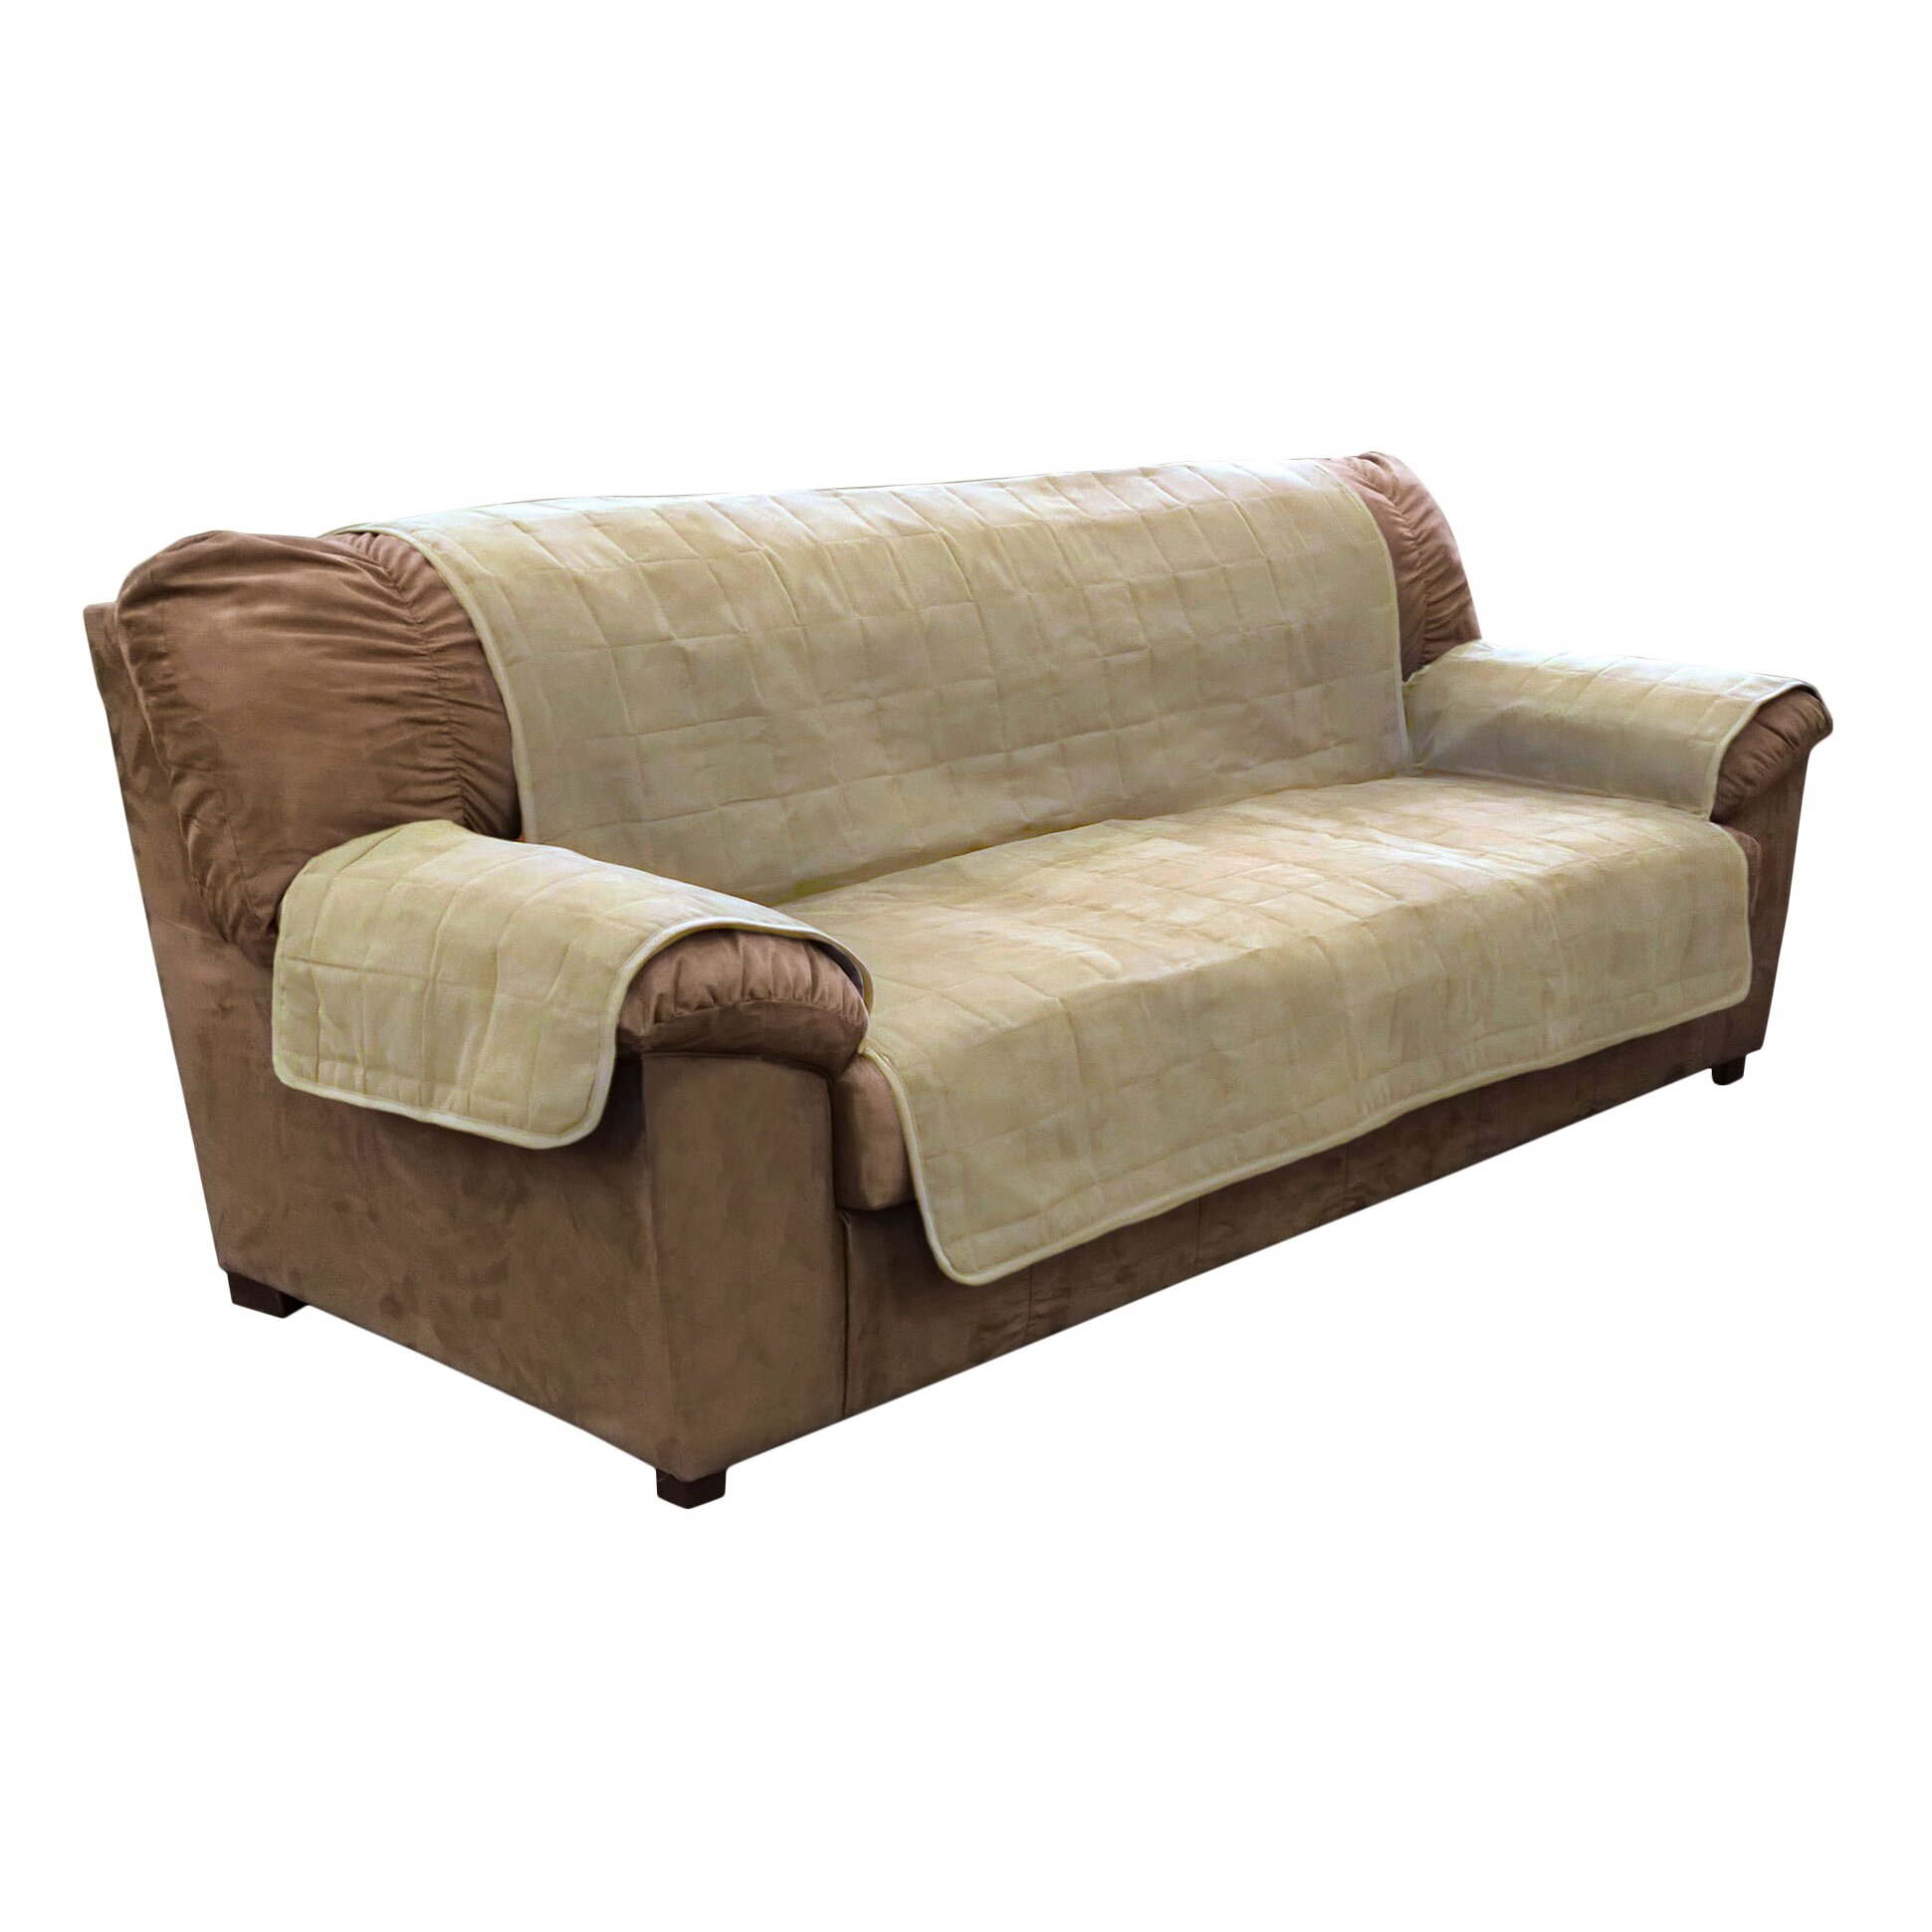 Furhaven suede sofa slipcover reviews wayfair for Suede furniture